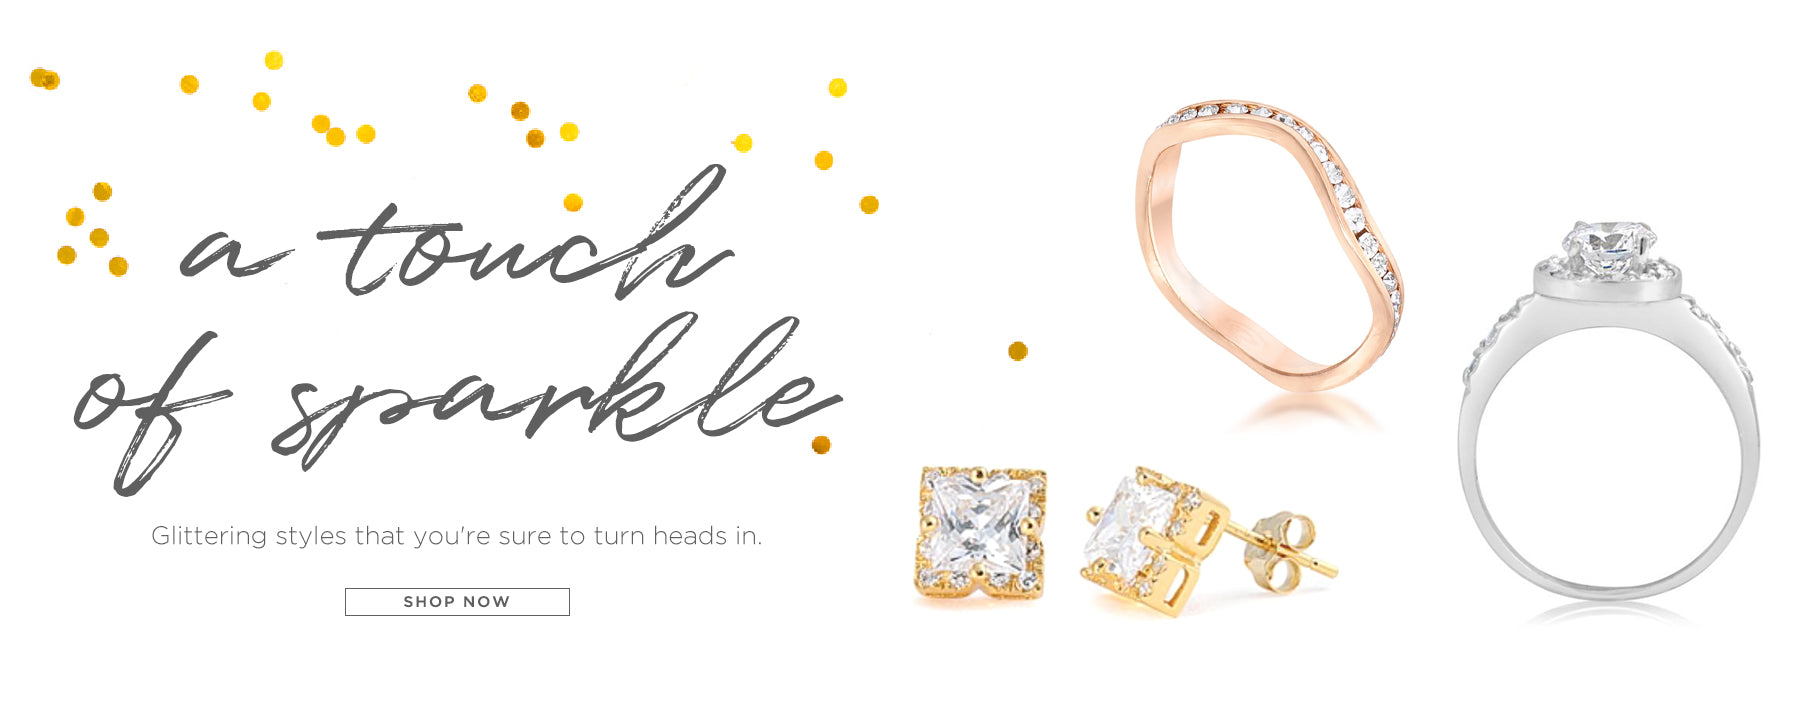 A touch of sparkle. Glittering styles that you're sure to turn heads in. Shop Now.